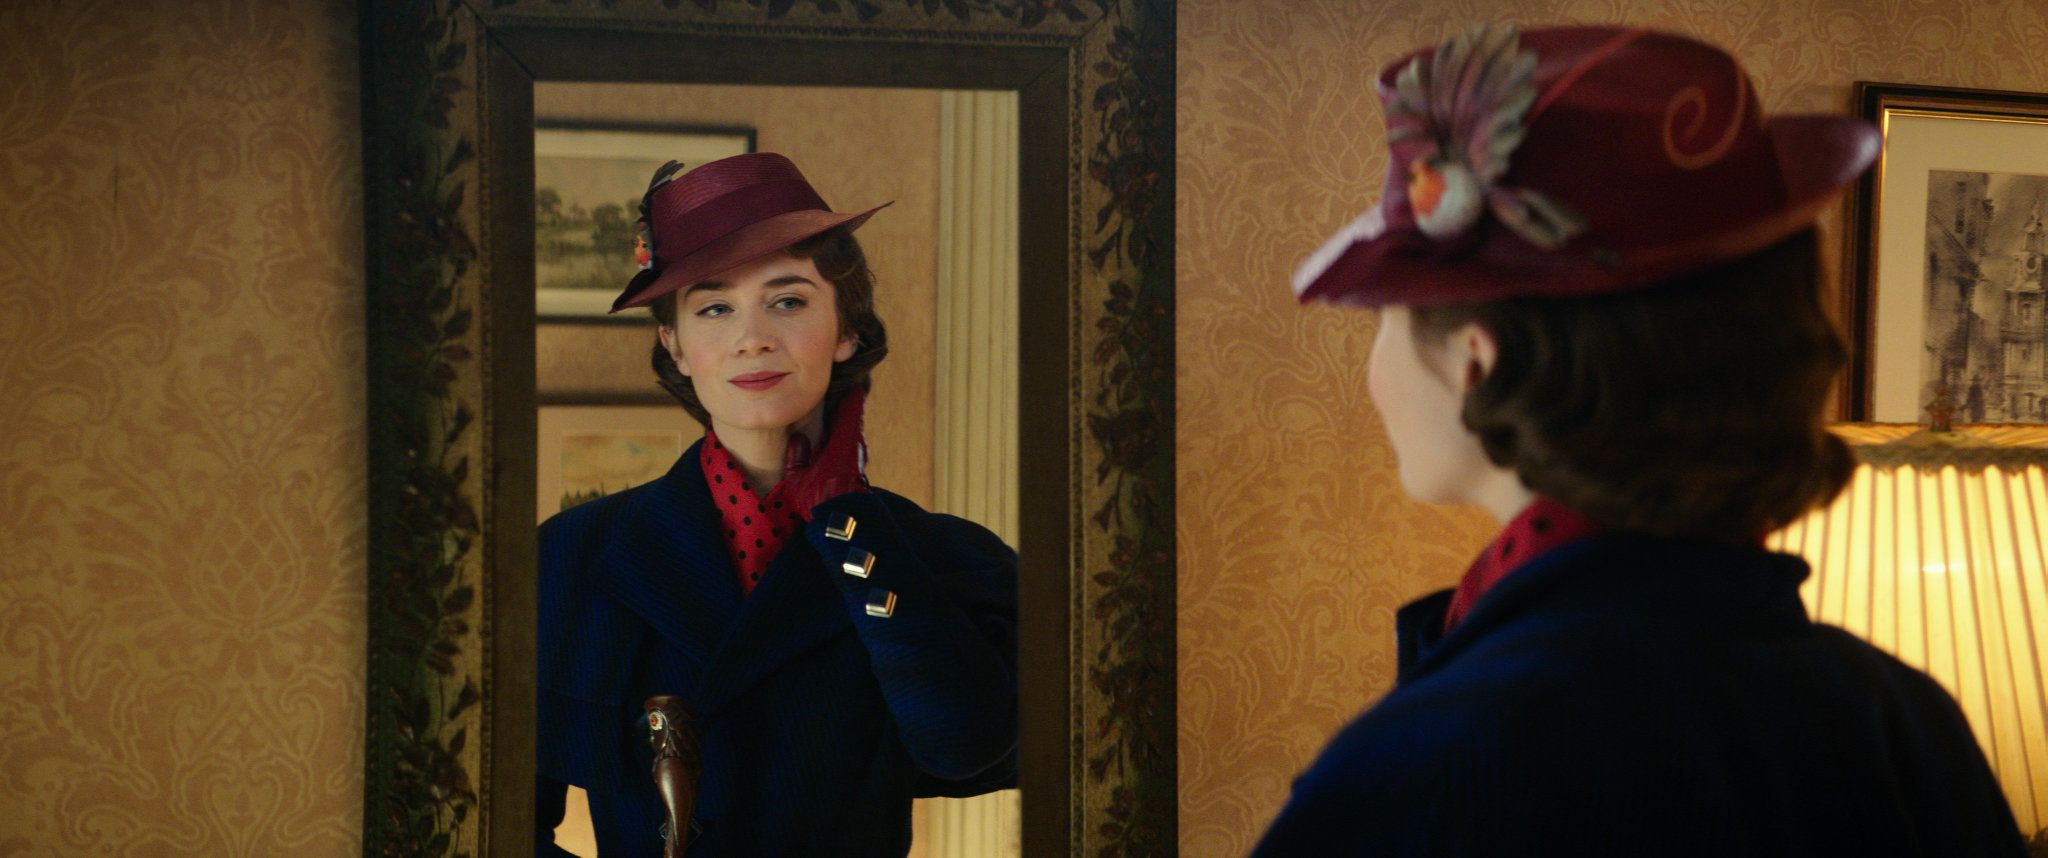 Emily Blunt in MARY POPPINS RETURNS.